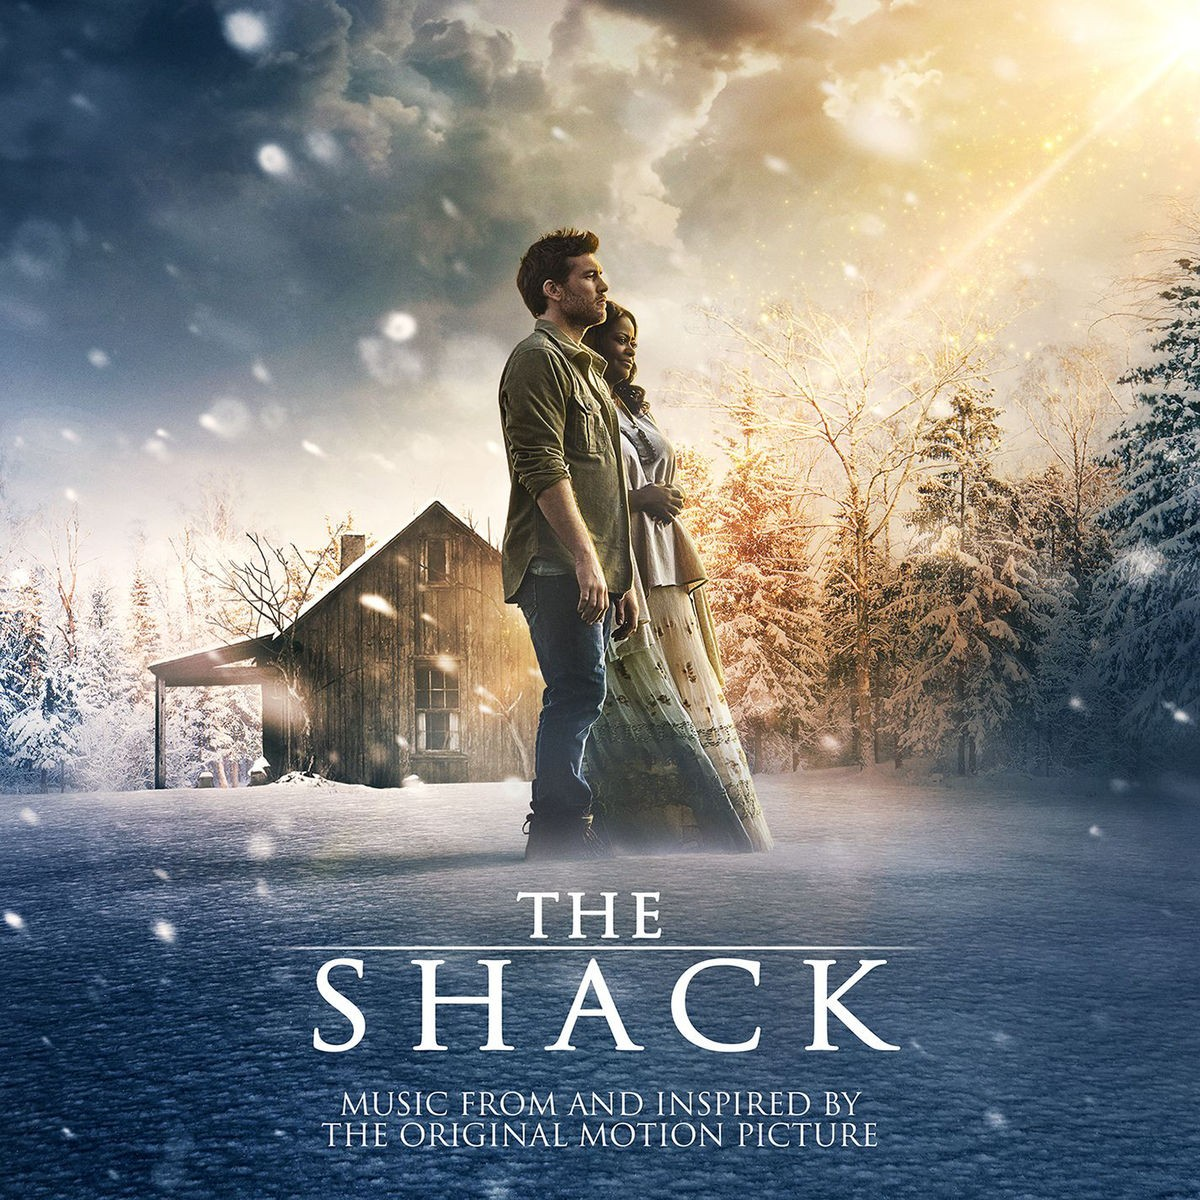 The Shack (Music from and Inspired By the Original Motion Picture) CD - 7567866237